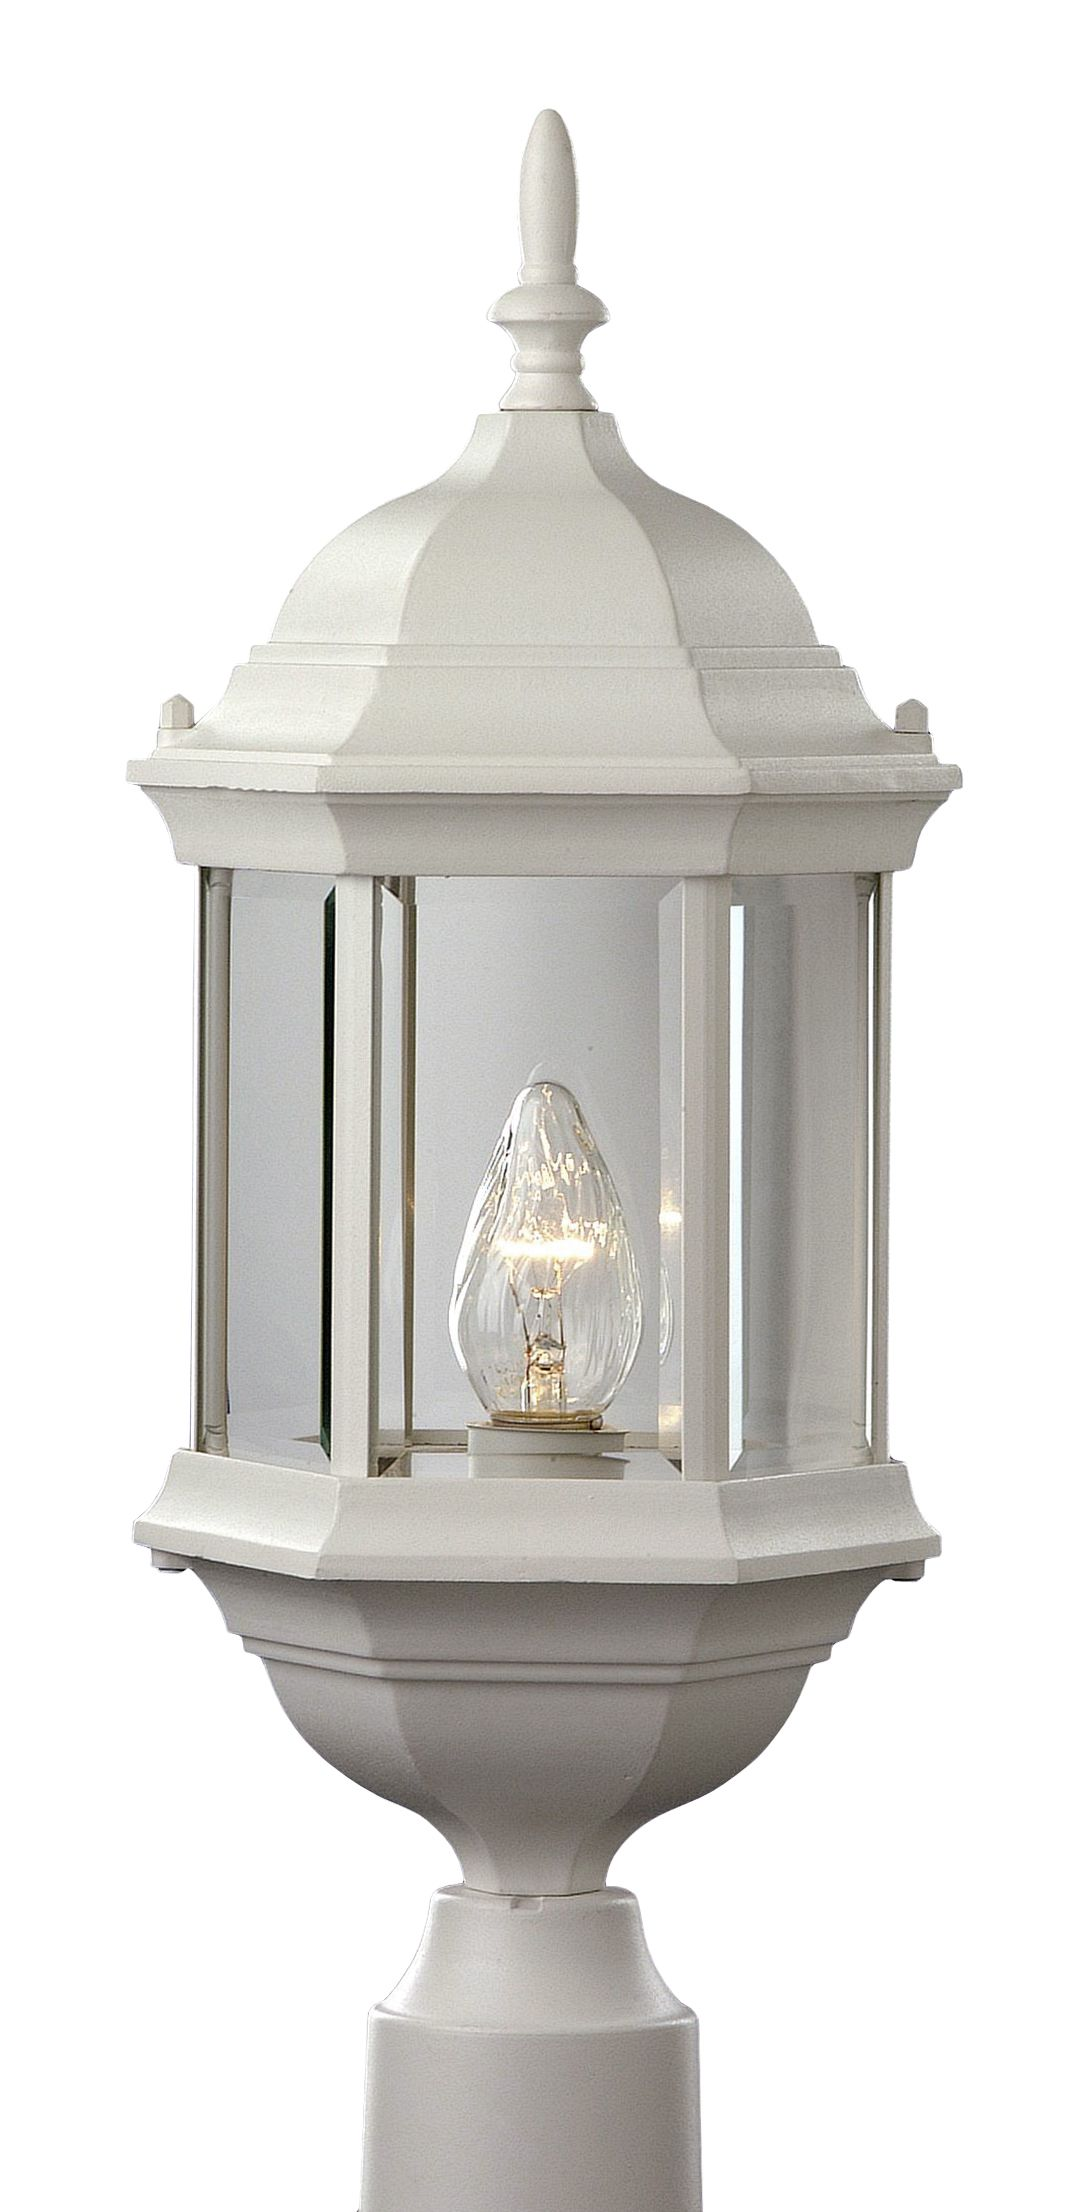 Trans globe 4352 white alicante 23 outdoor post top light - Exterior landscape lighting fixtures ...